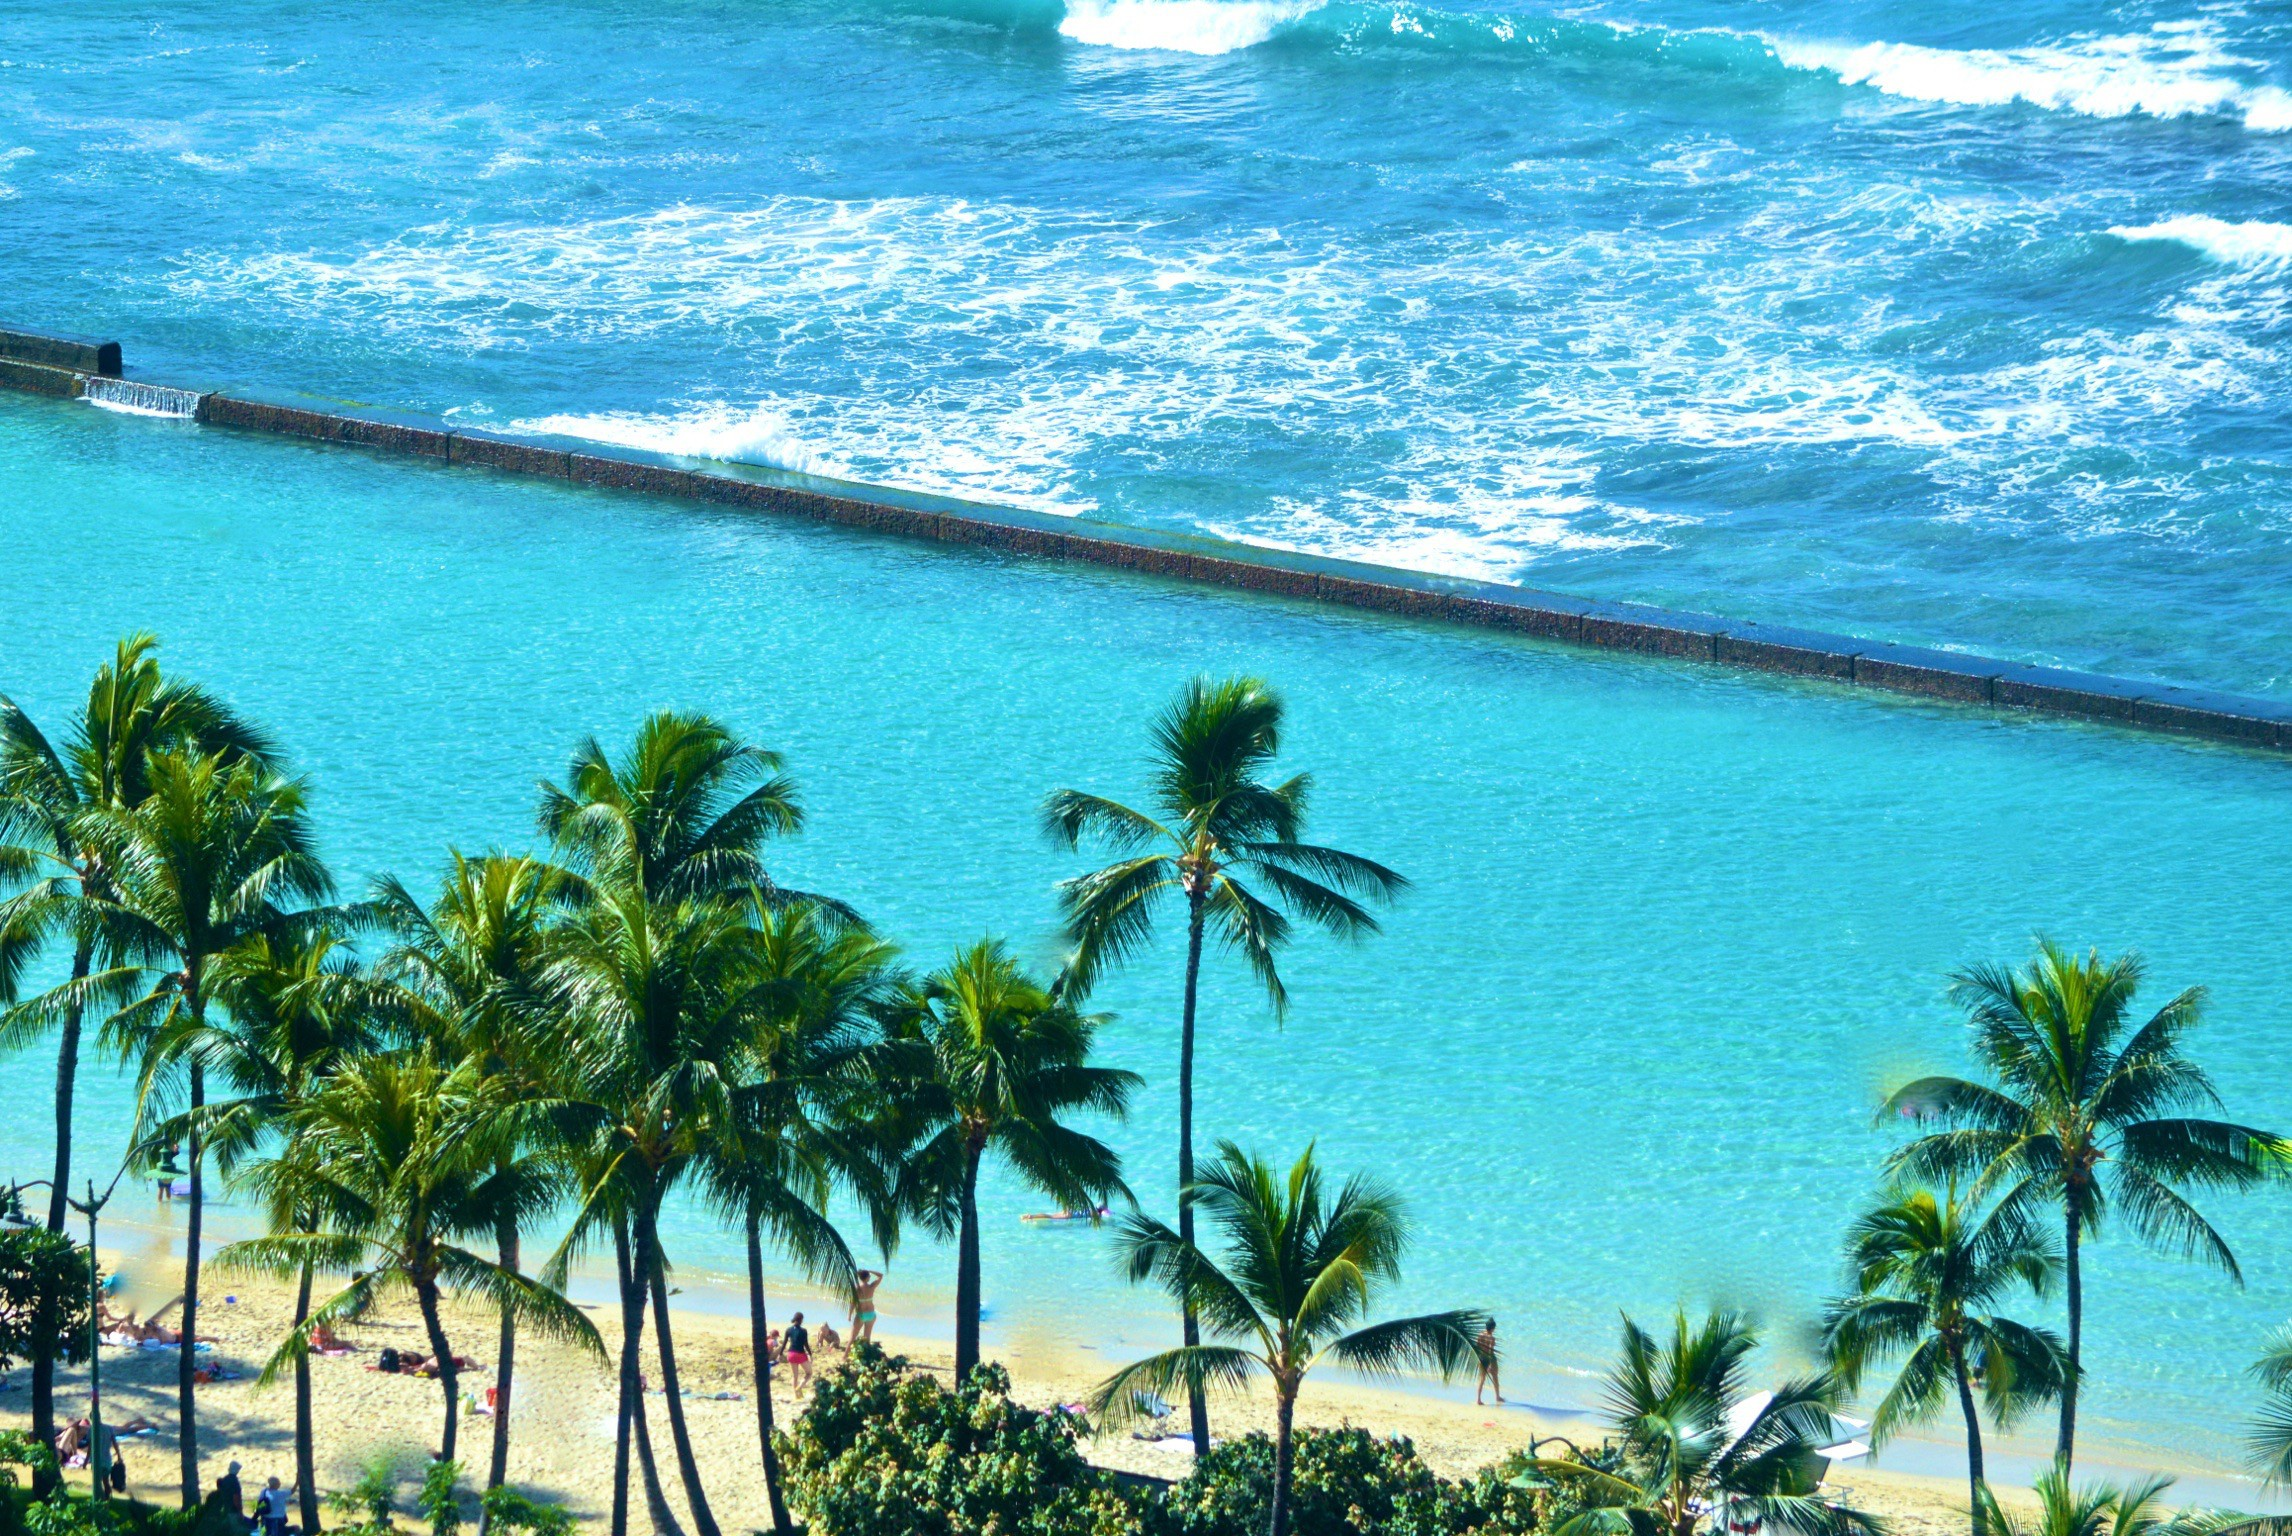 The Best Places to Go Surfing in Hawaii